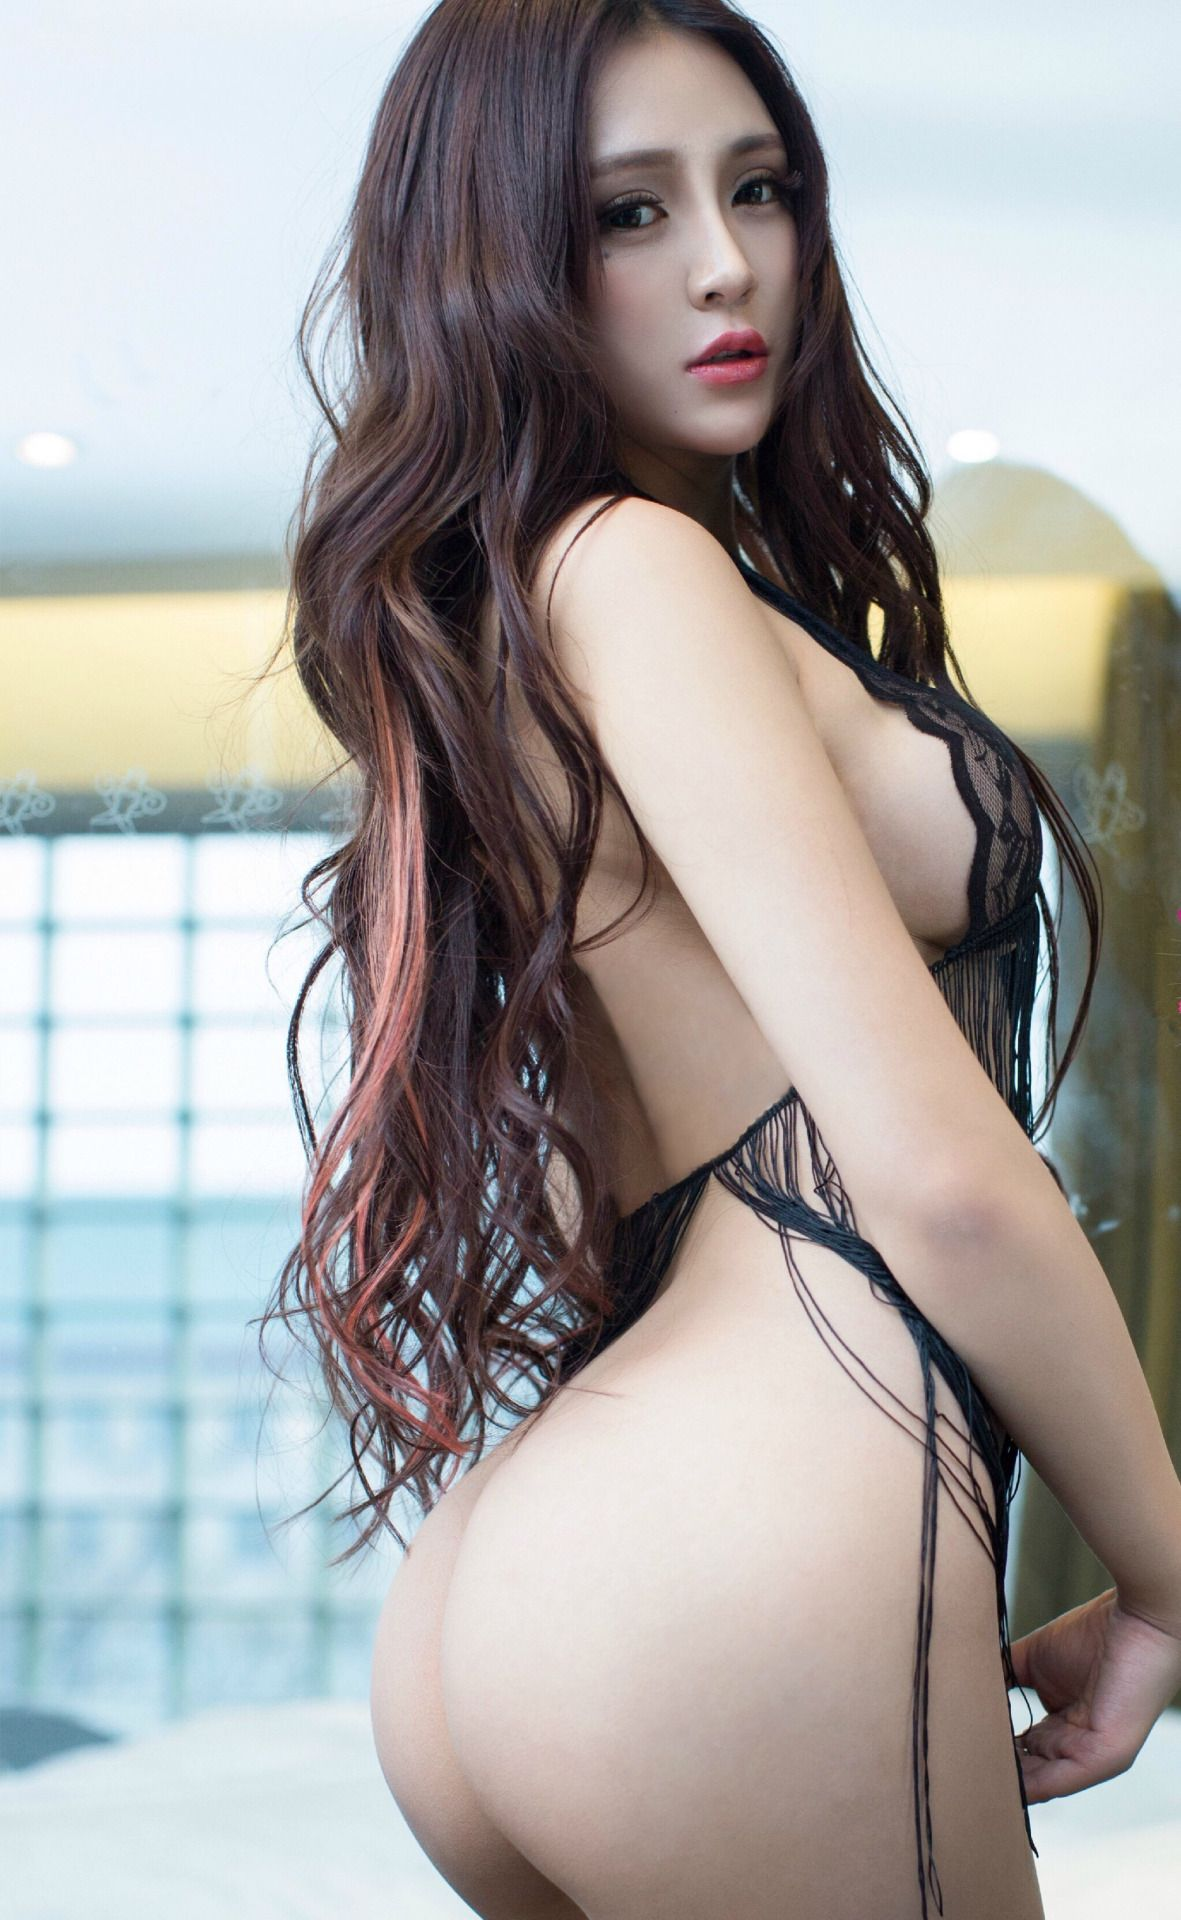 japanese junior nudist girls